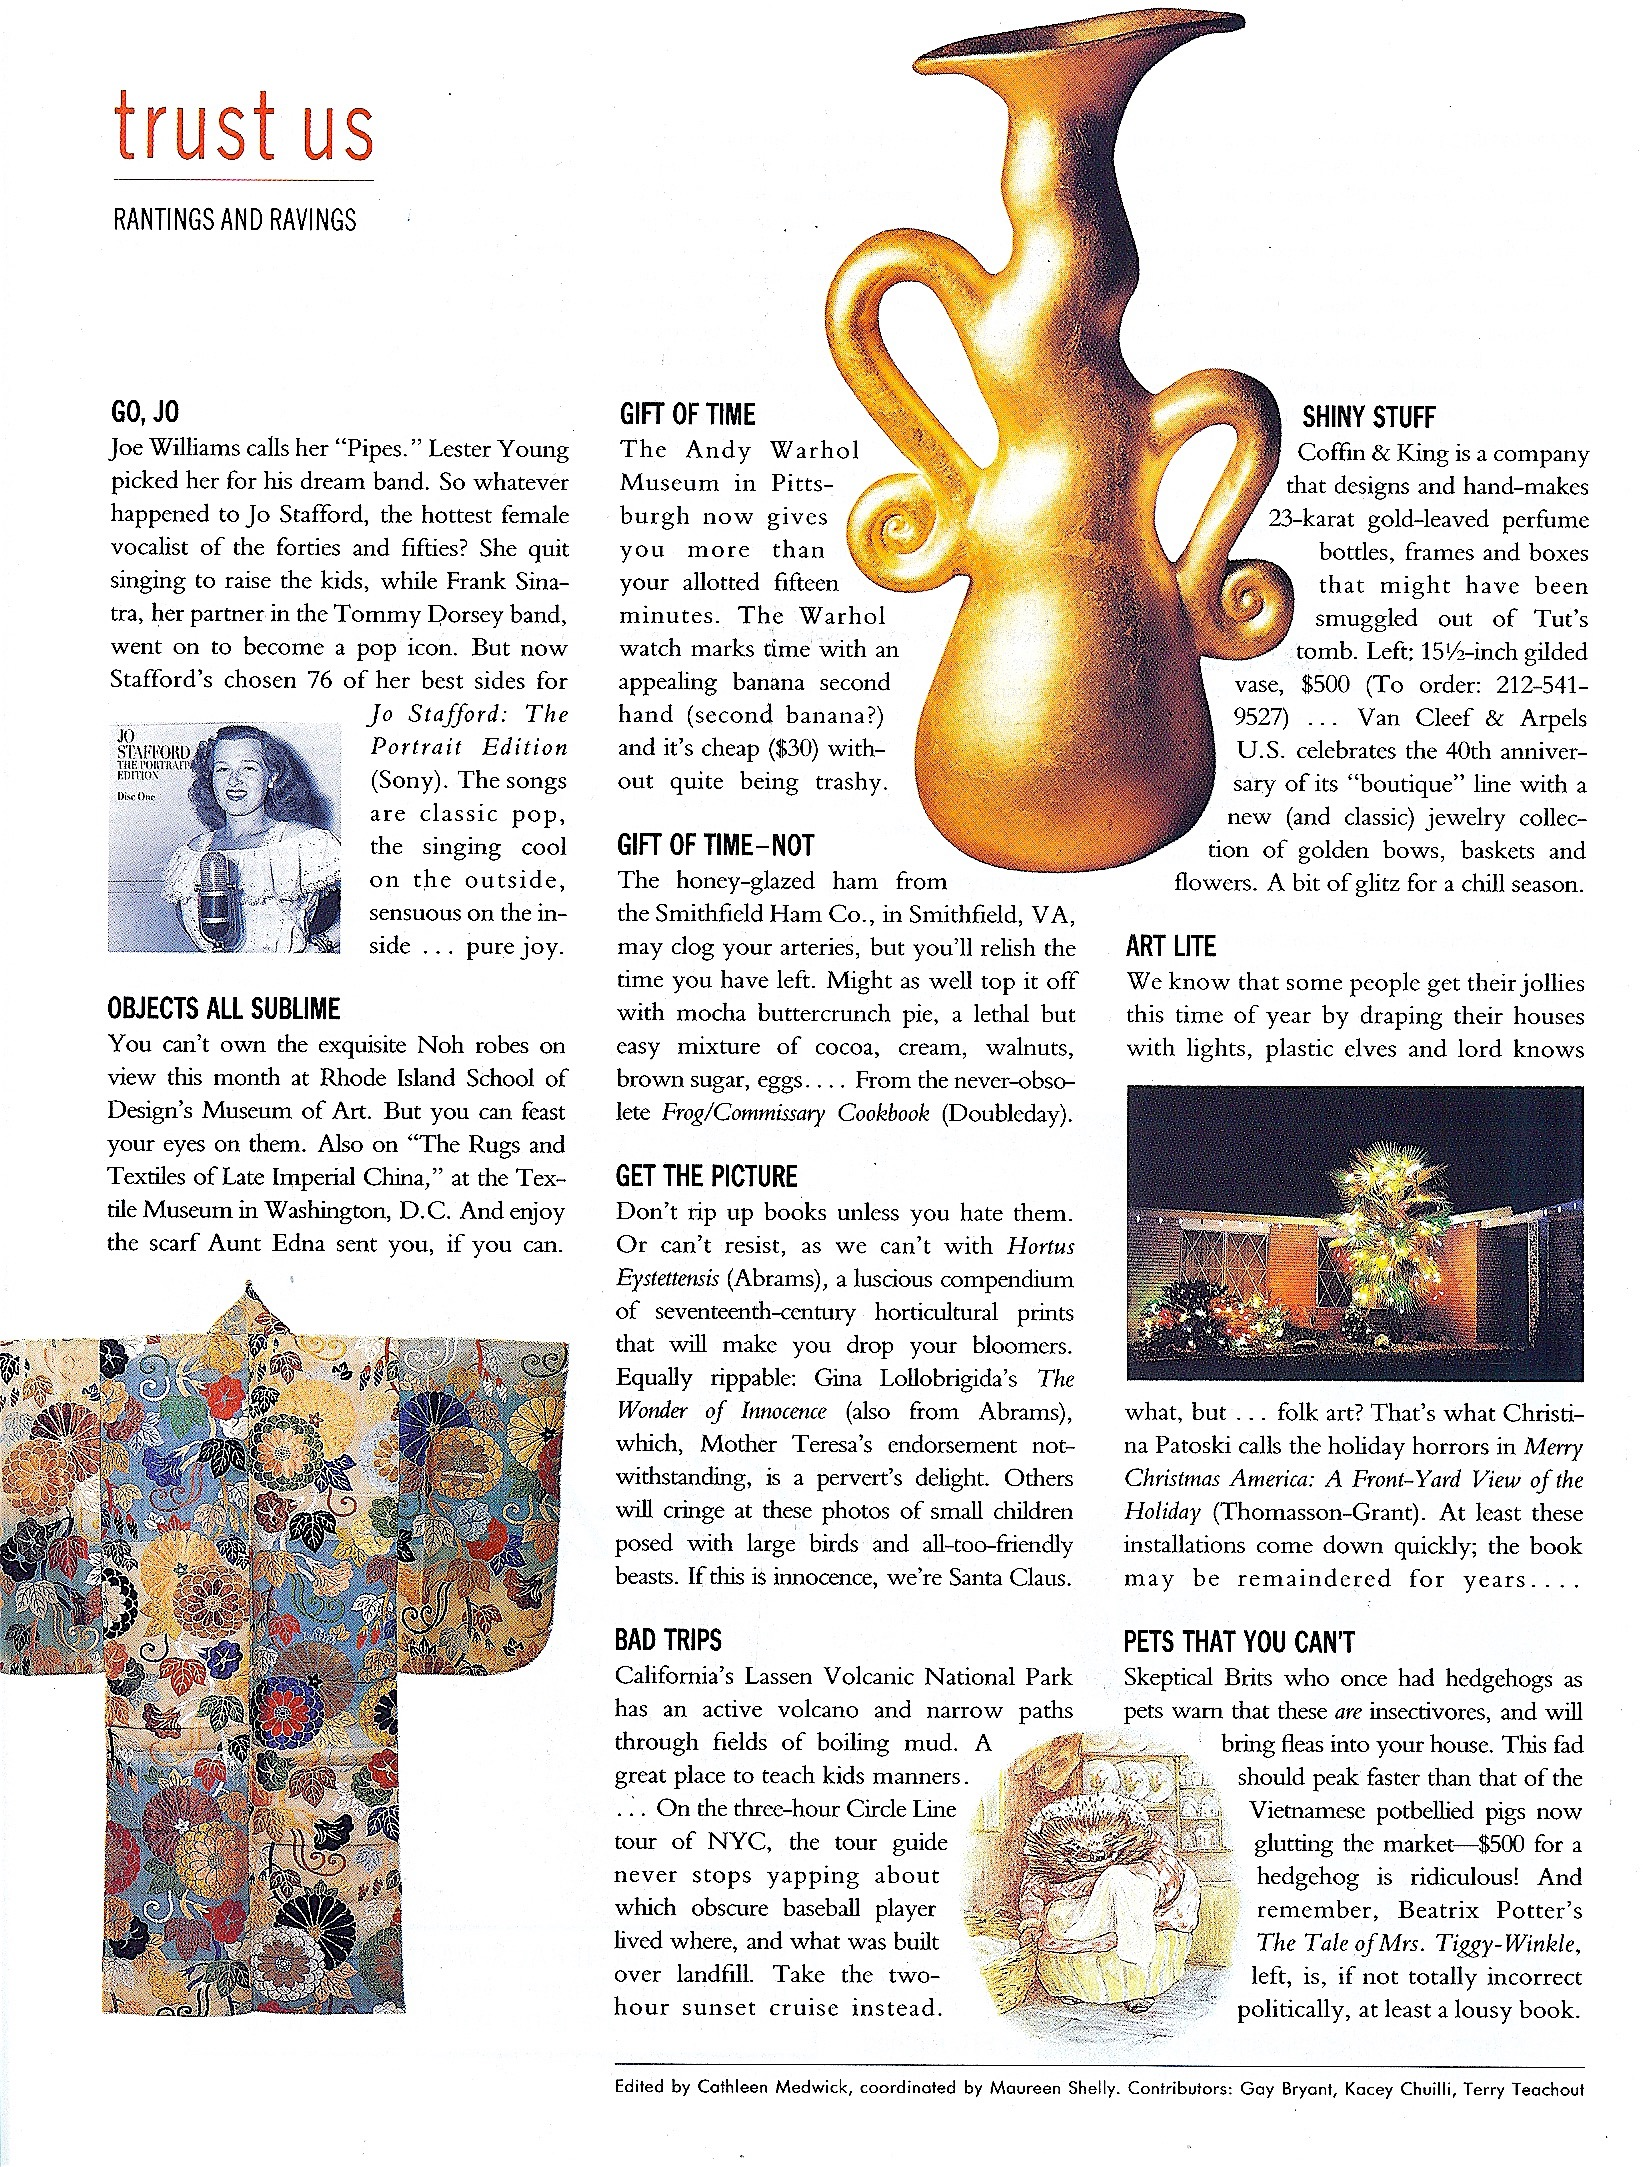 Coffin & King Press - Coffin & King Gilded Vase featured in Mirabella